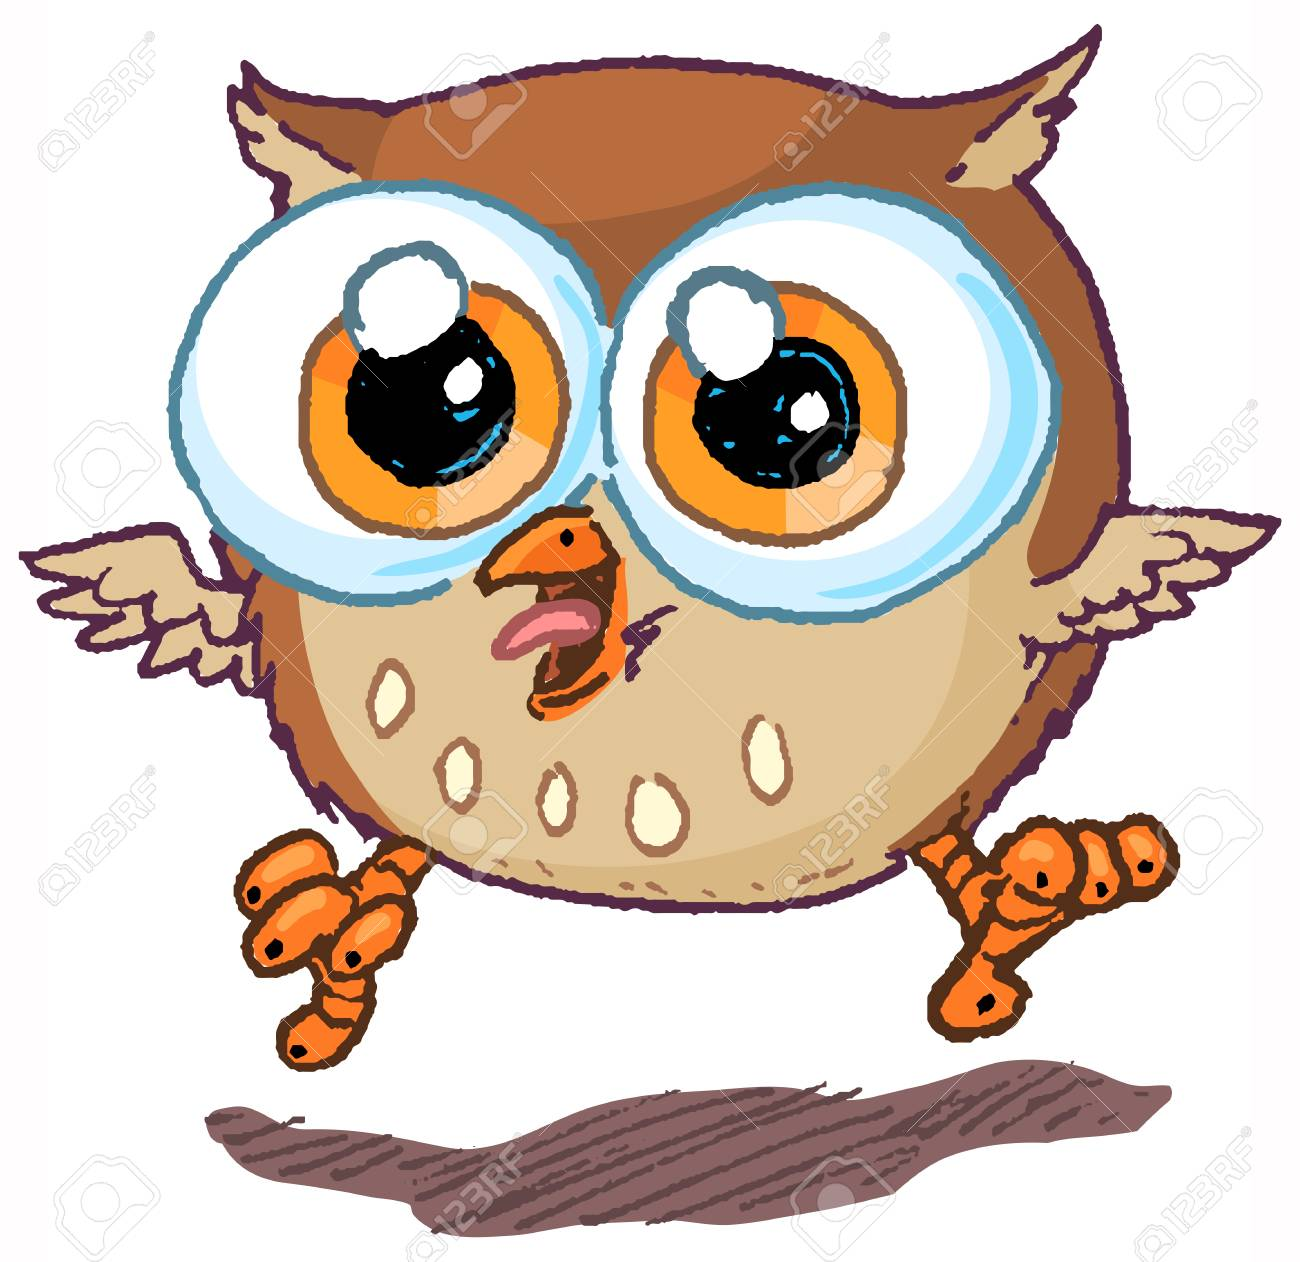 Vector cartoon clip art illustration of a cute and happy owl...